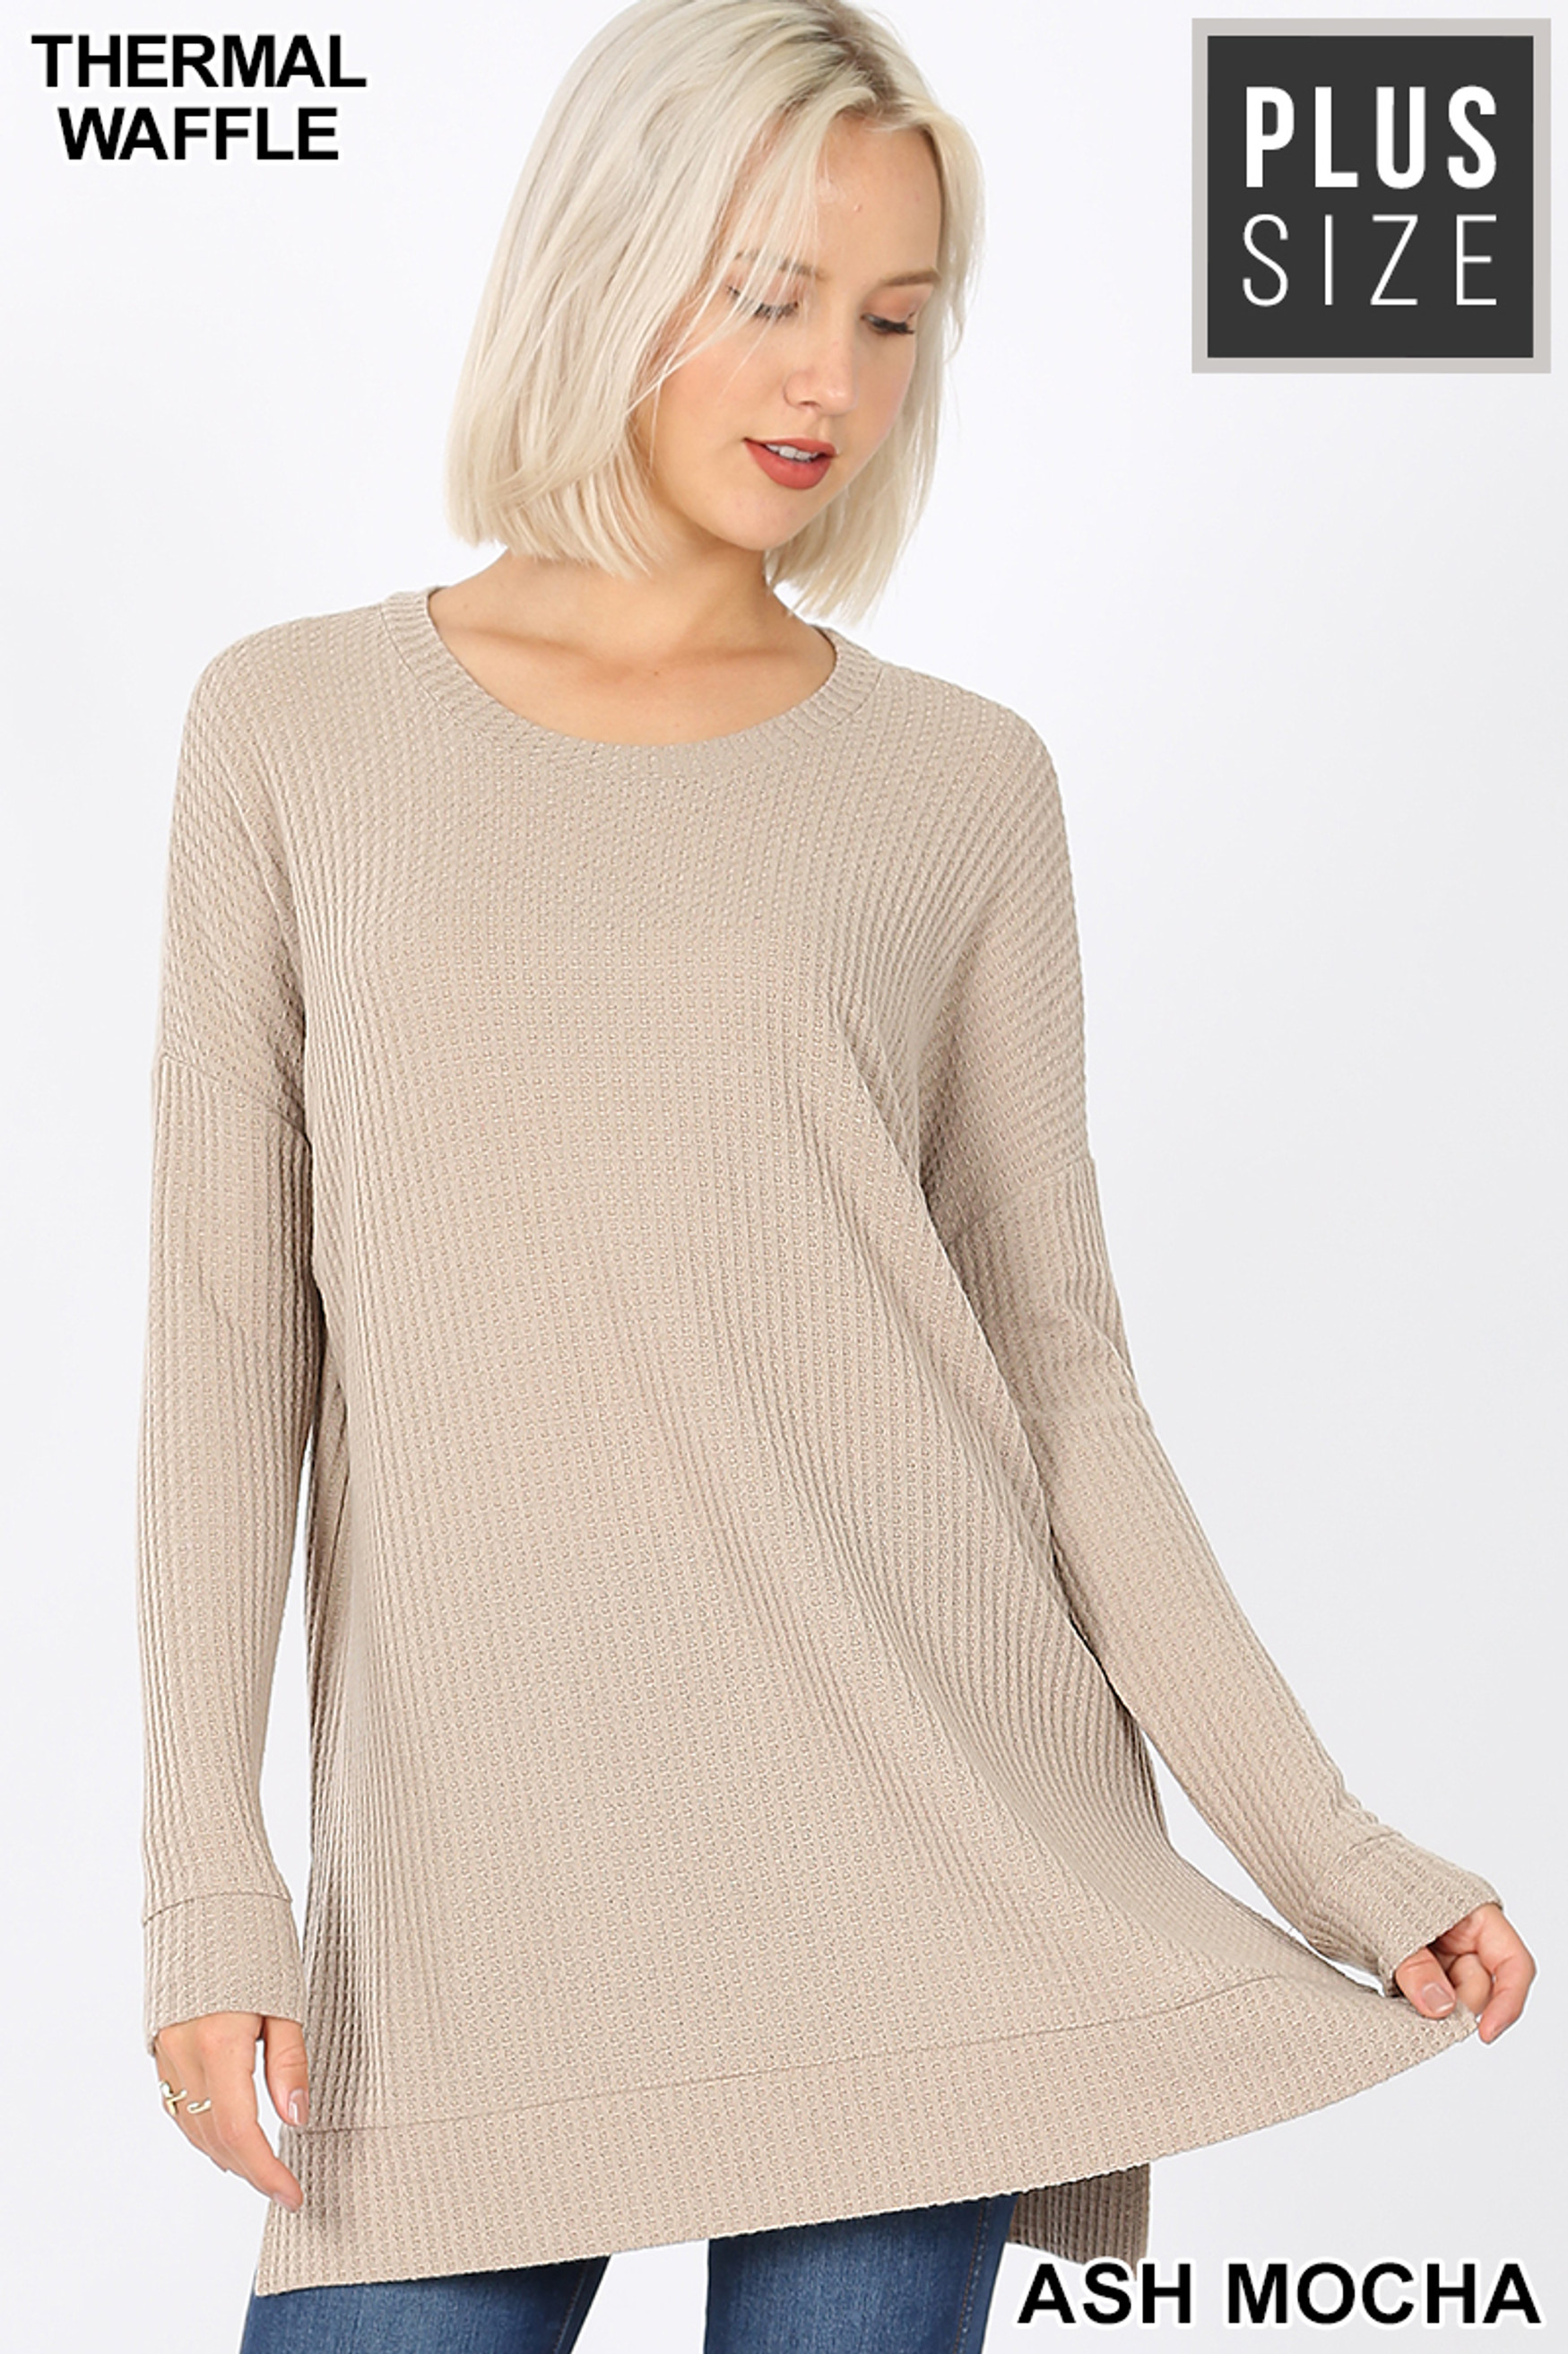 Front image of Ash Mocha Brushed Thermal Waffle Knit Round Neck Plus Size Sweater